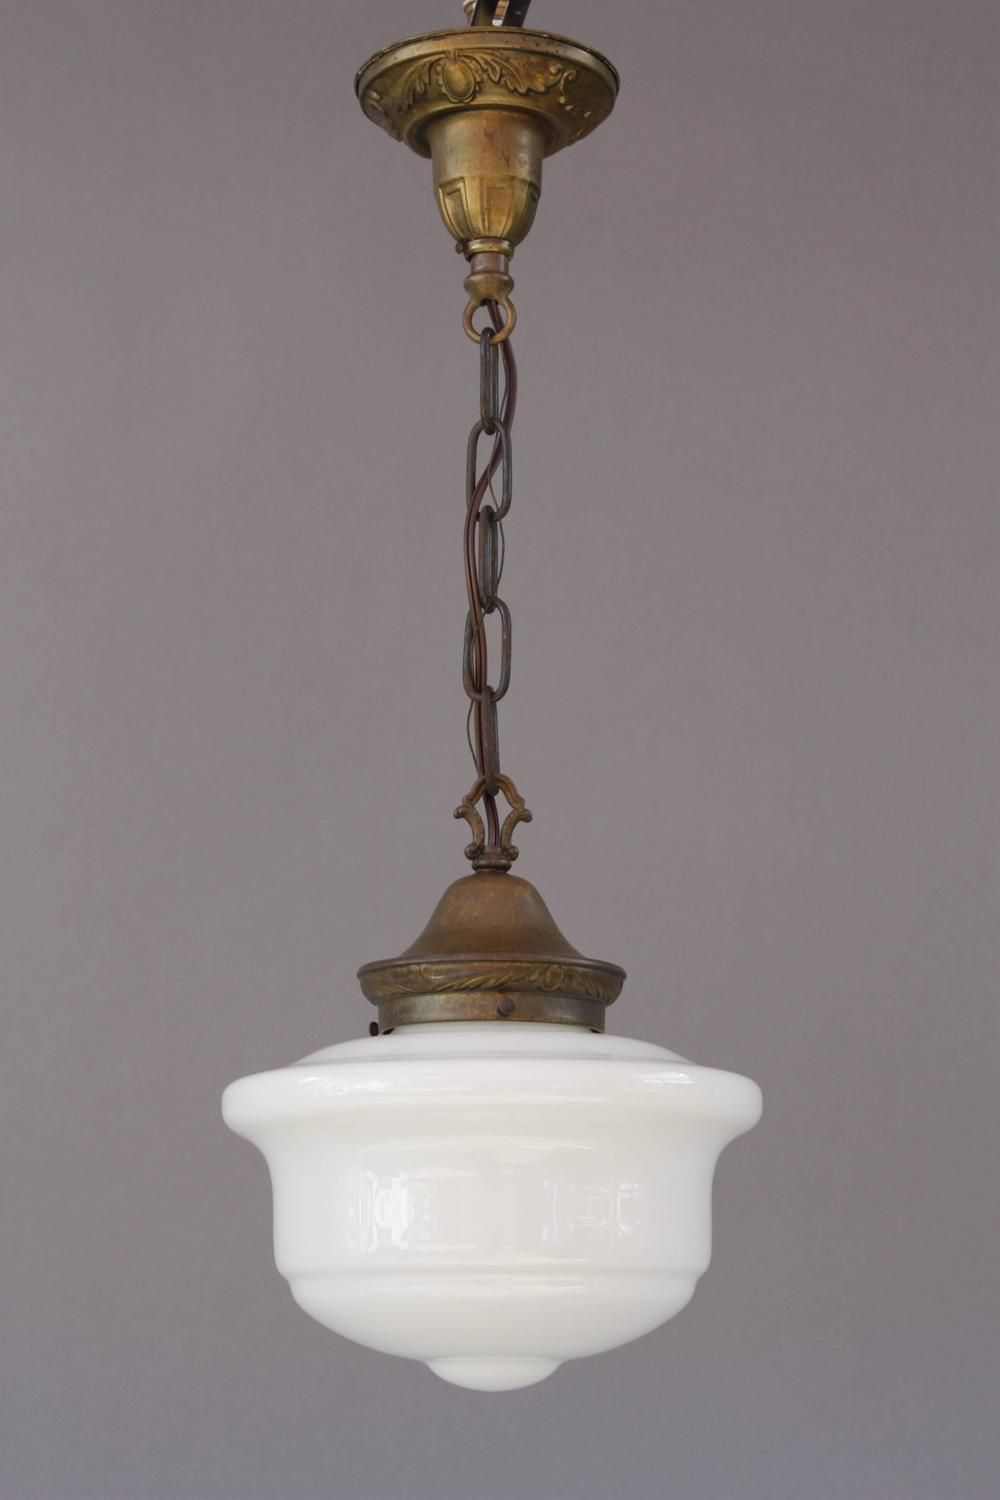 glass lighting fixtures. 1920s milk glass pendant light fixture lighting fixtures